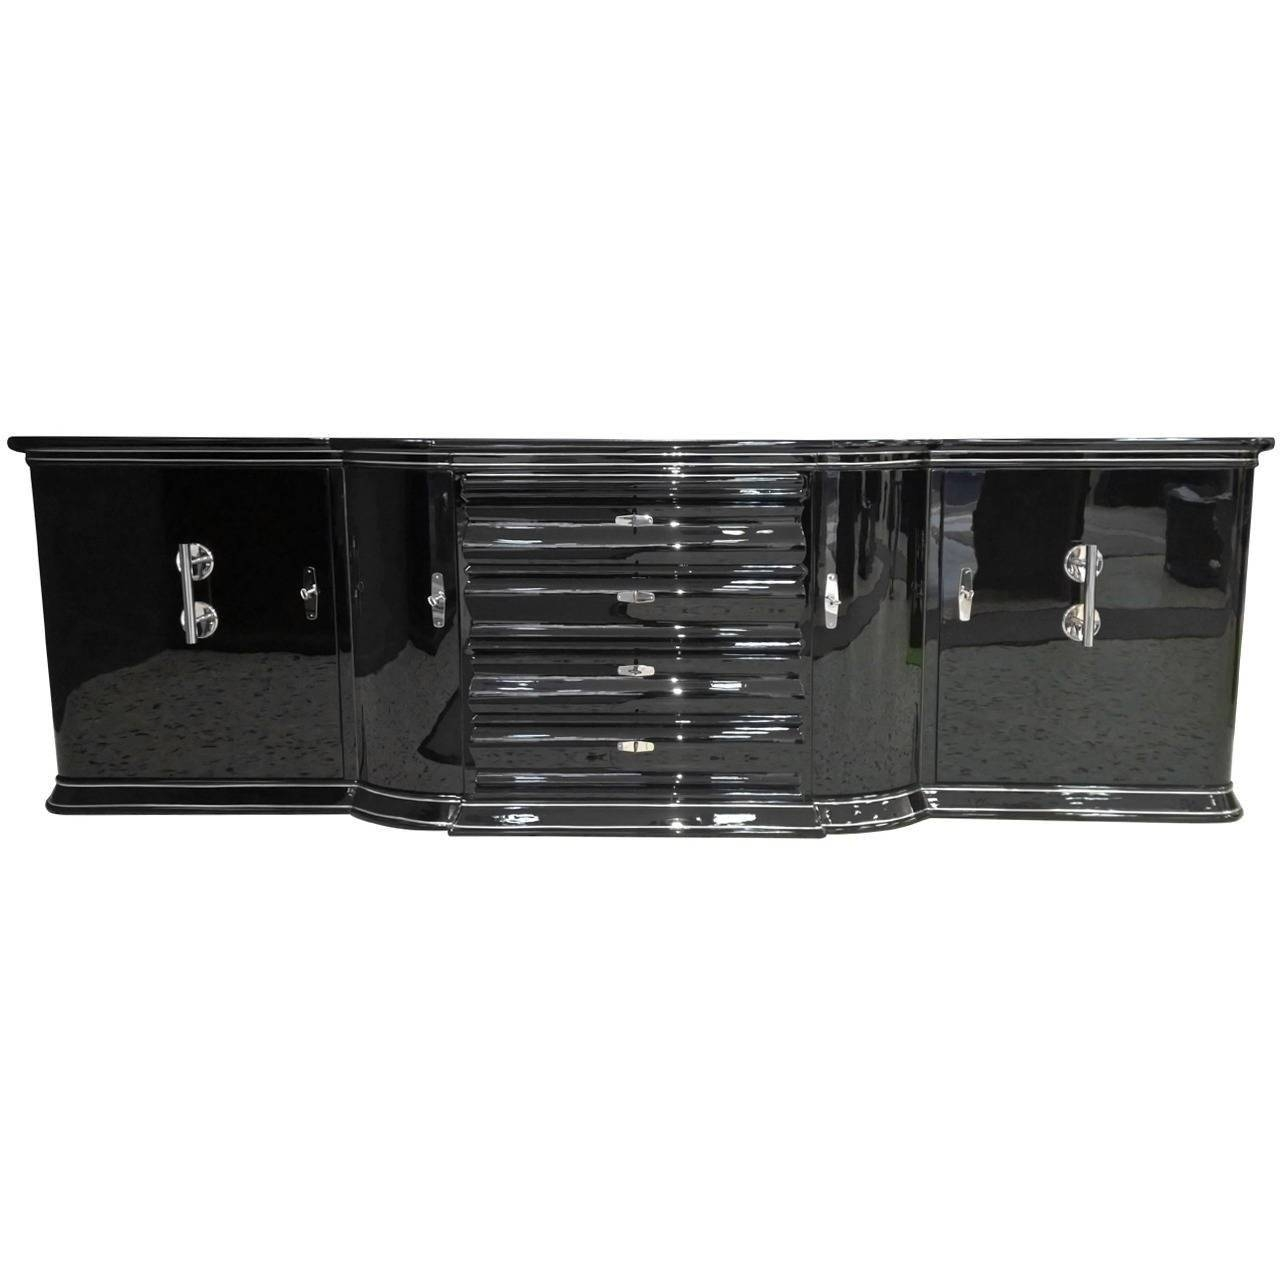 Extra Large Art Deco Sideboard In High Gloss Black For Sale At 1Stdibs for High Gloss Black Sideboards (Image 12 of 30)